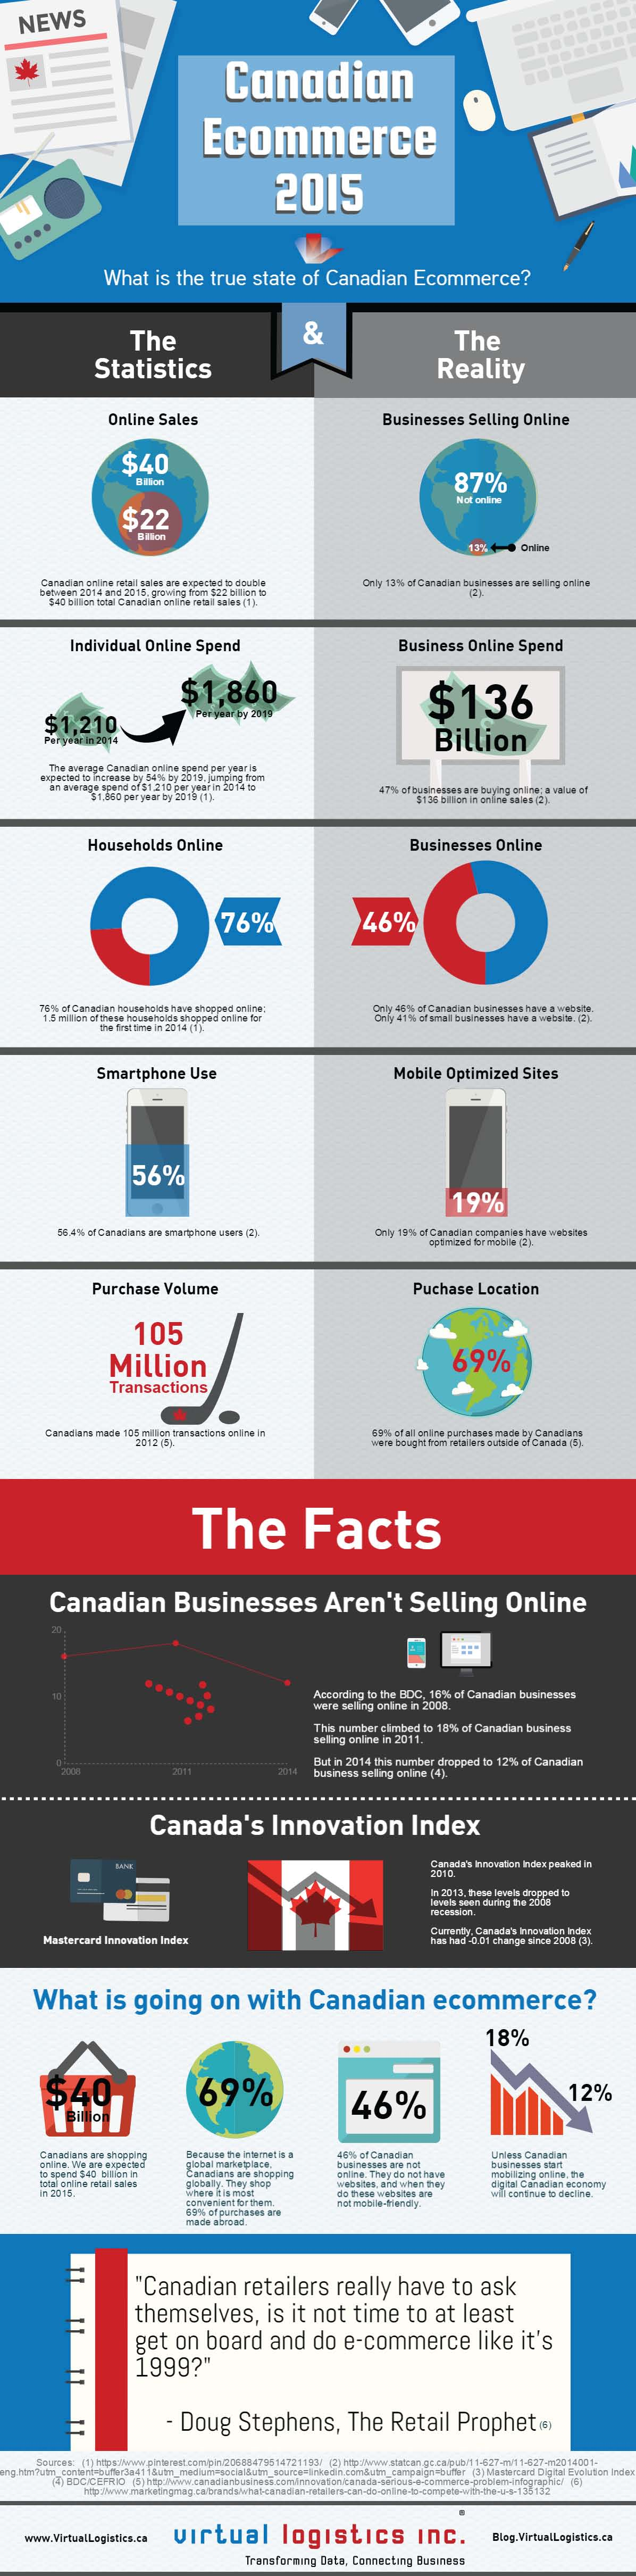 Canadian_Ecommerce_2015_VirtualLogistics